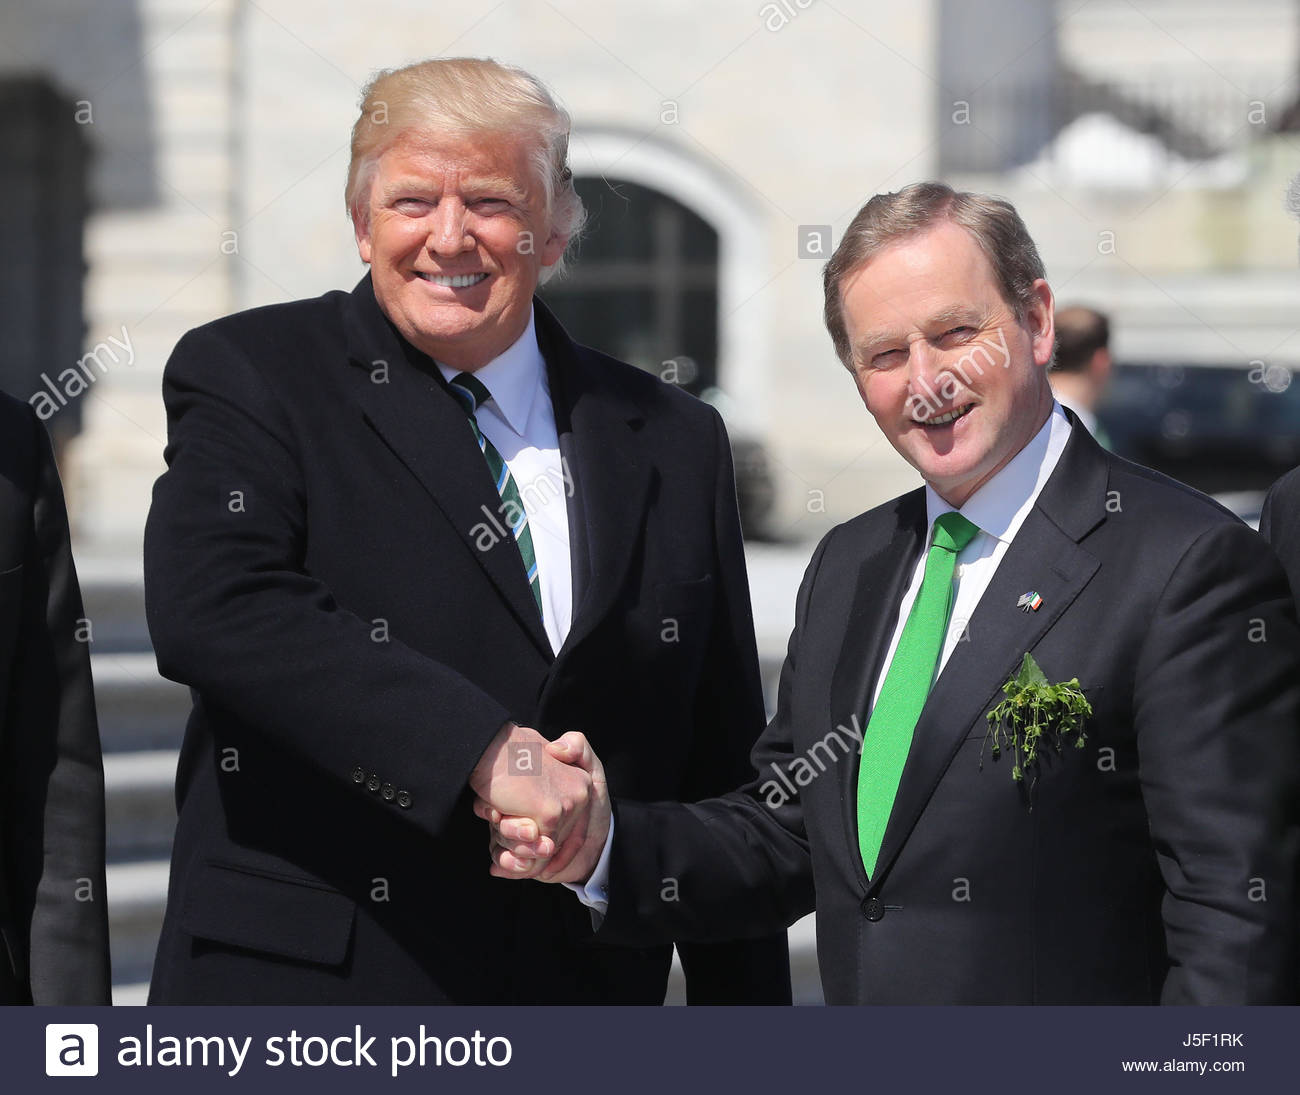 The difference between the irish president and the taoiseach